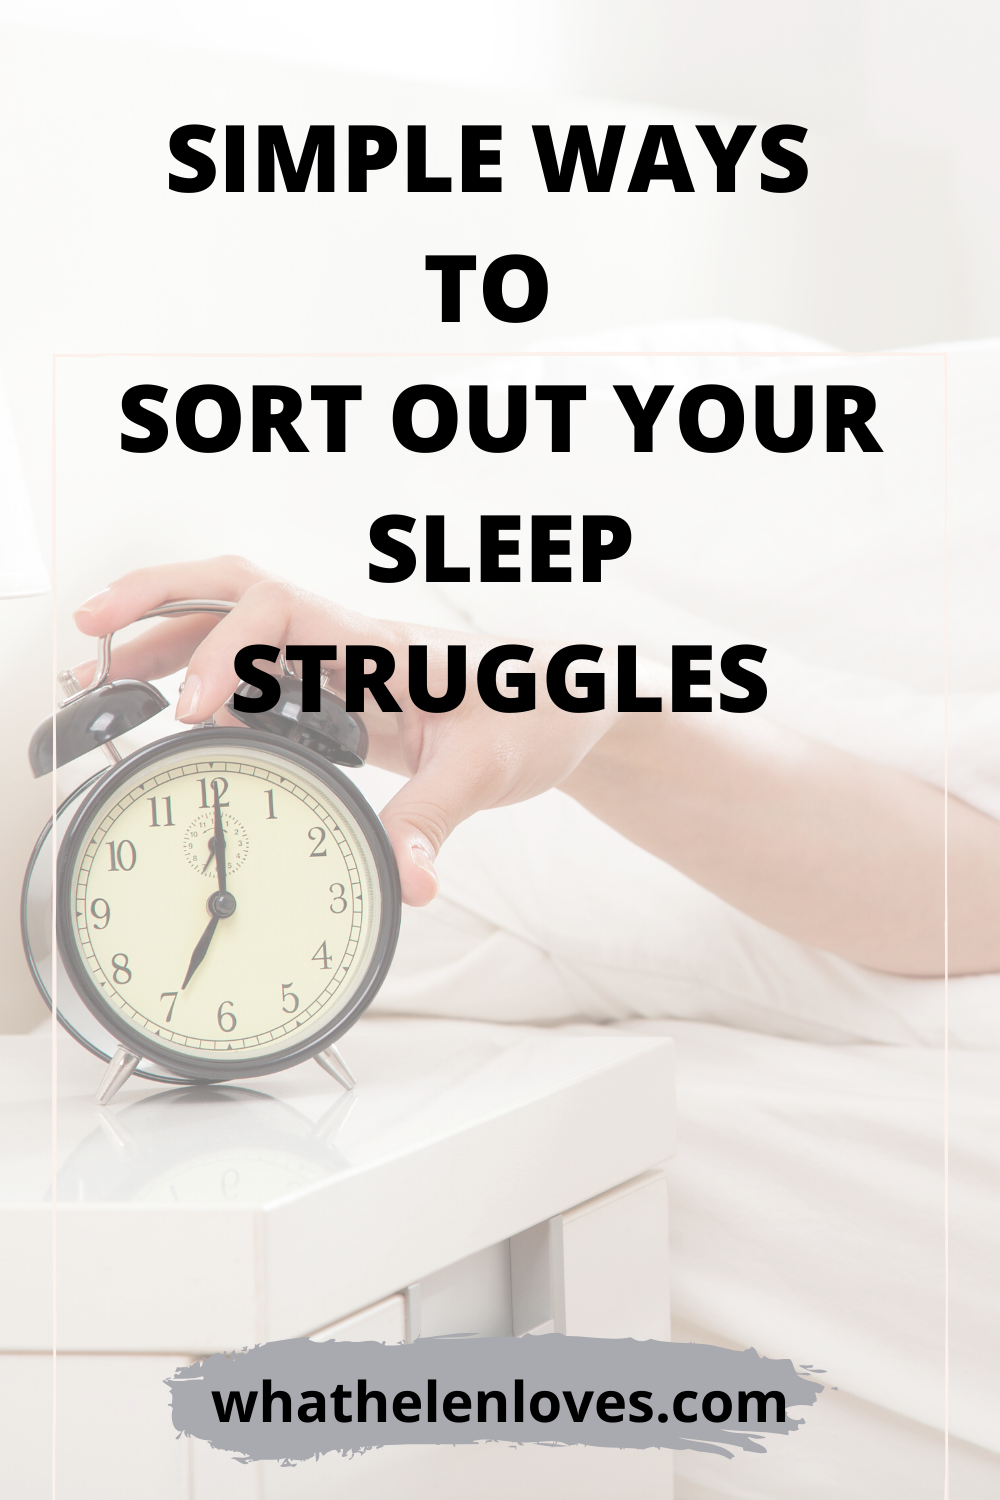 Pinterest pin for a post about tips to sort out your sleep struggles.